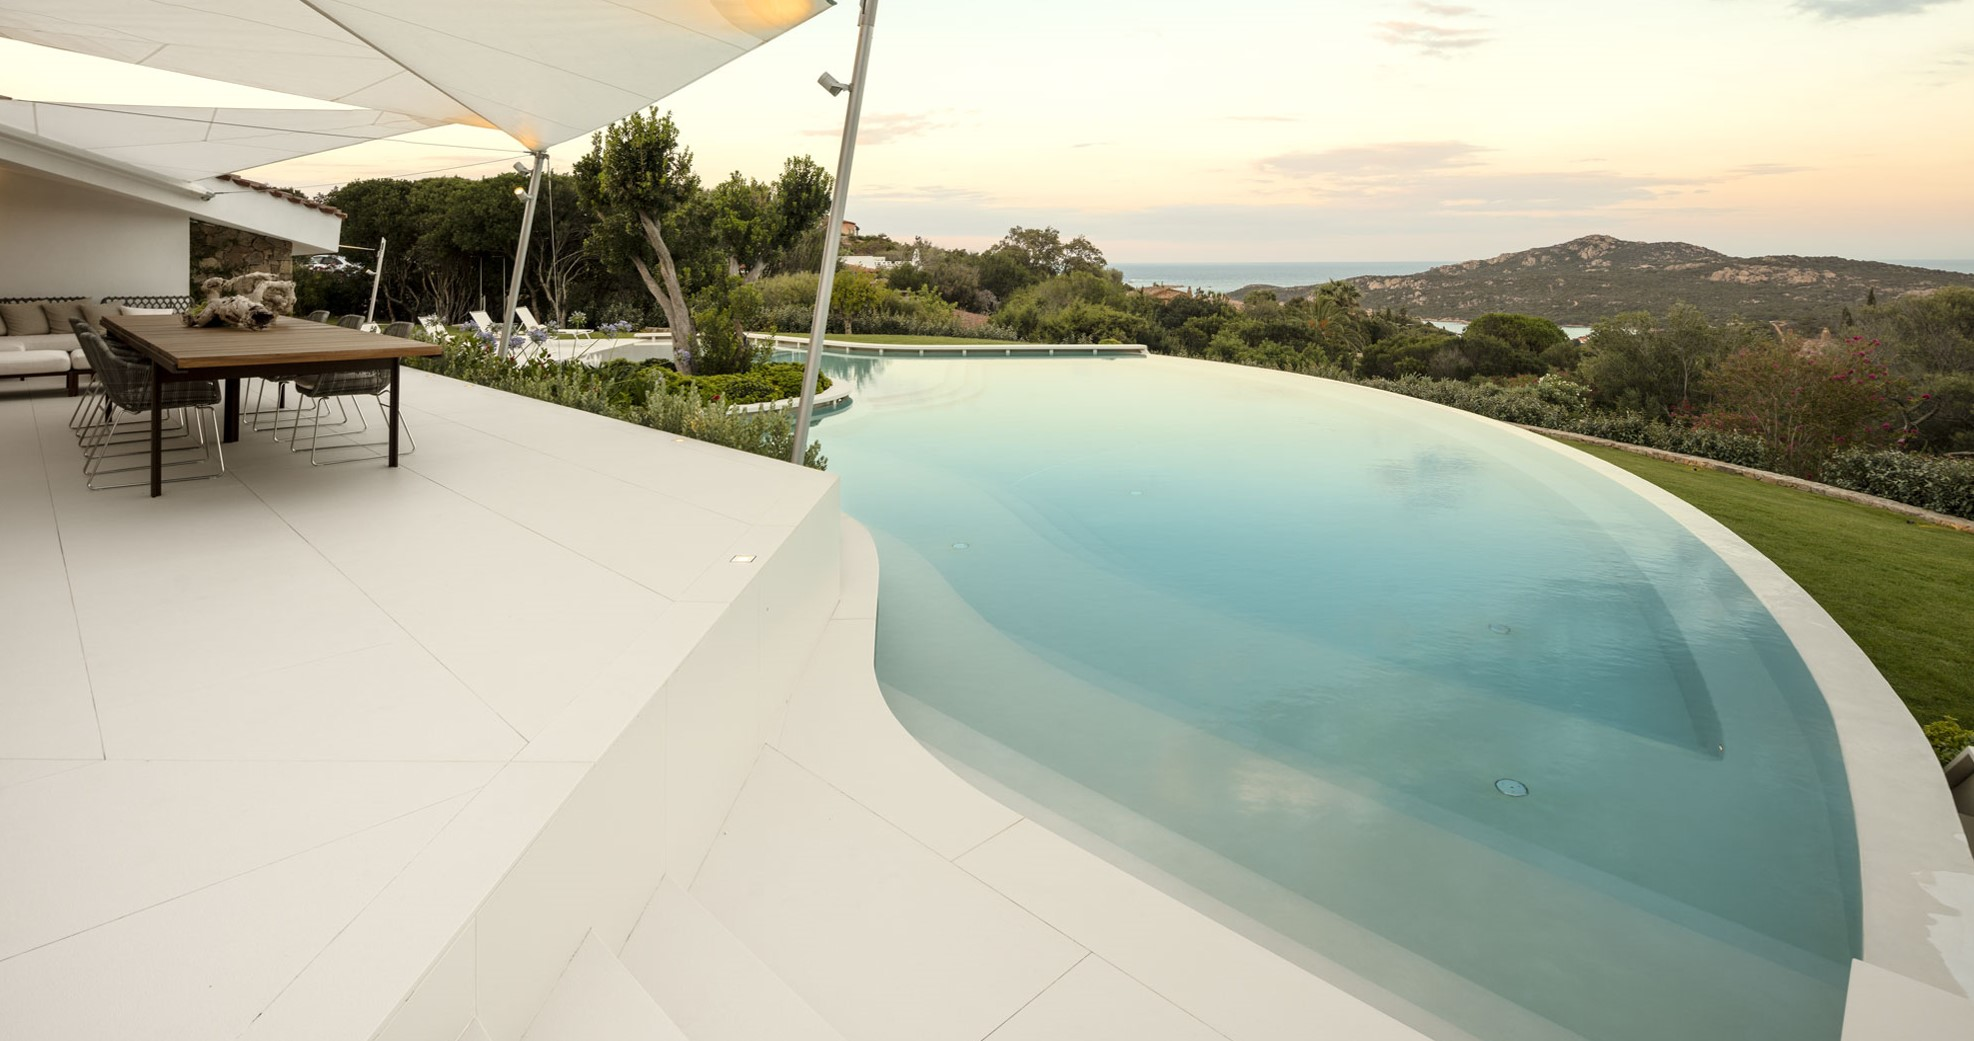 Sintered stone slabs for swimming pools